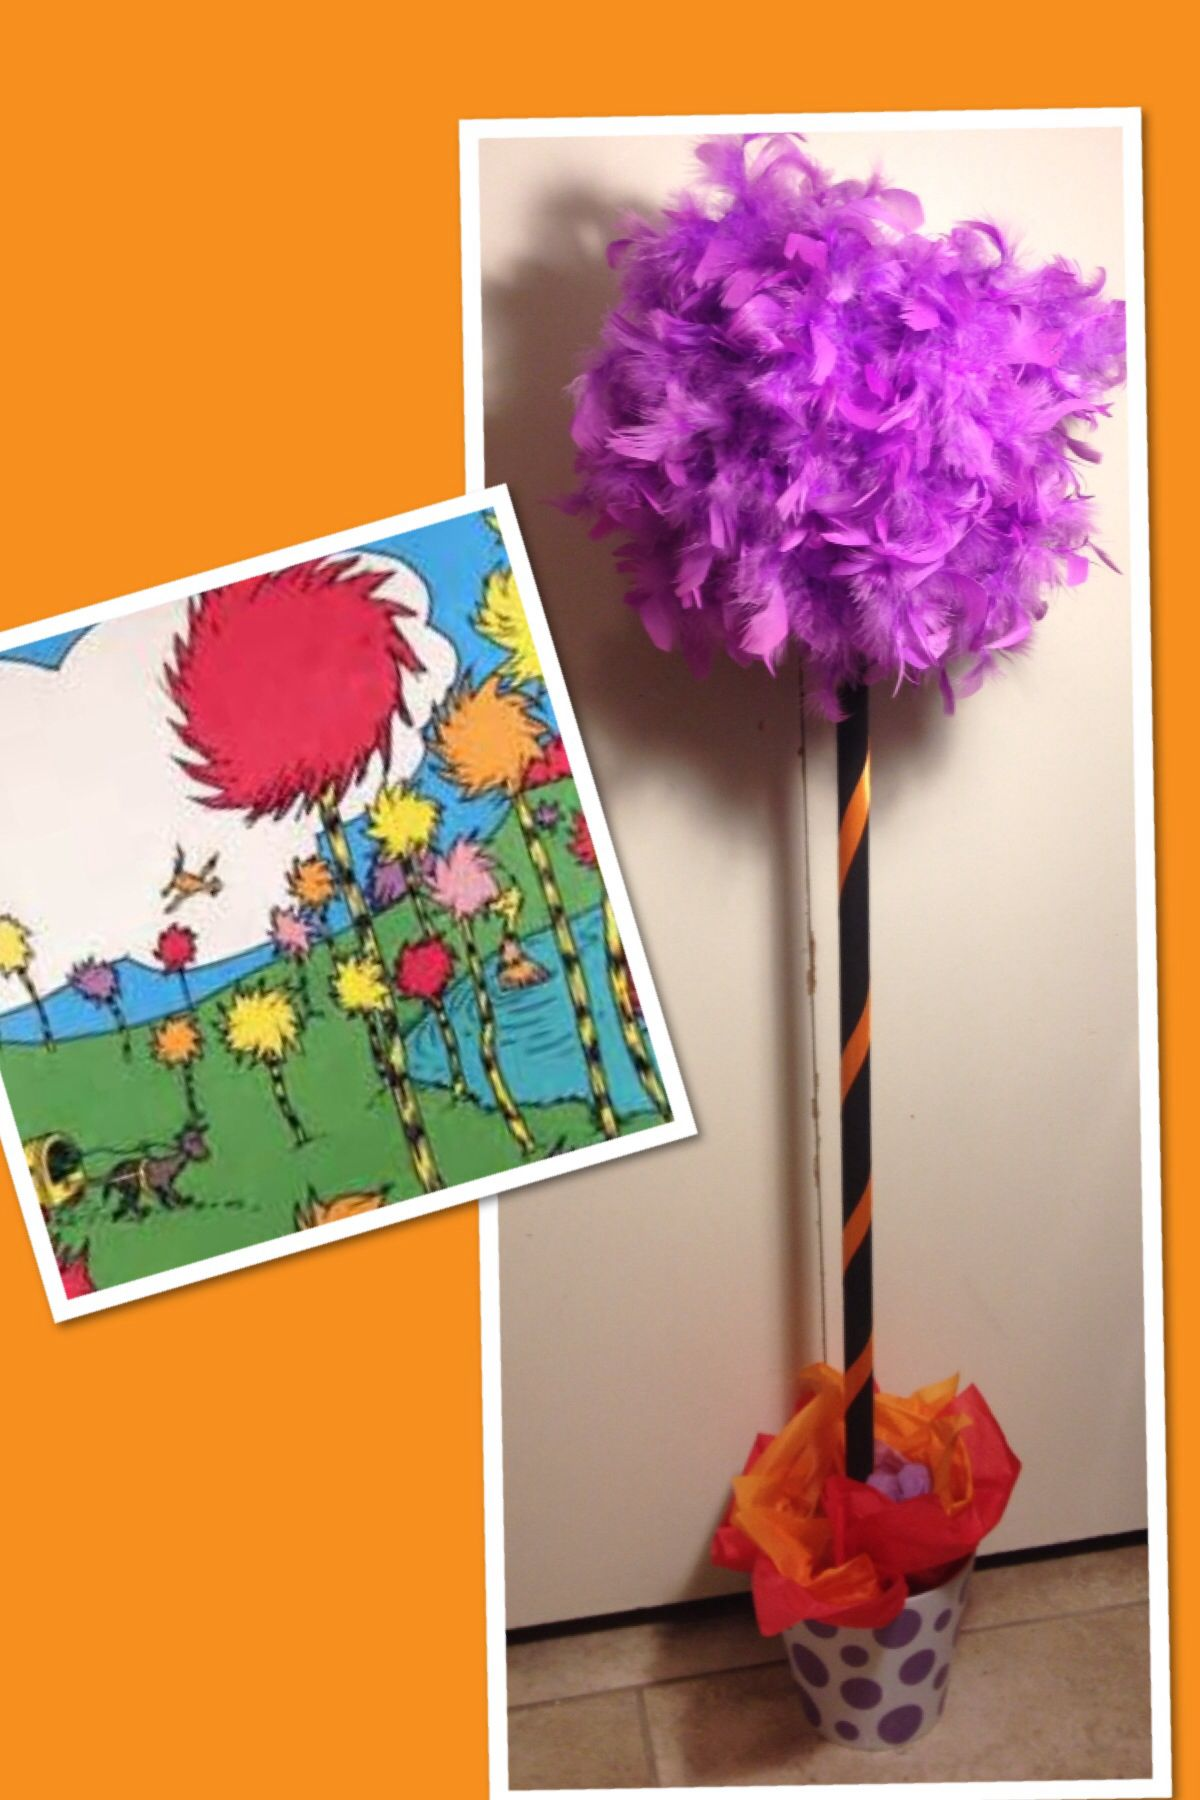 Dr Seuss truffula trees I made for work (With images